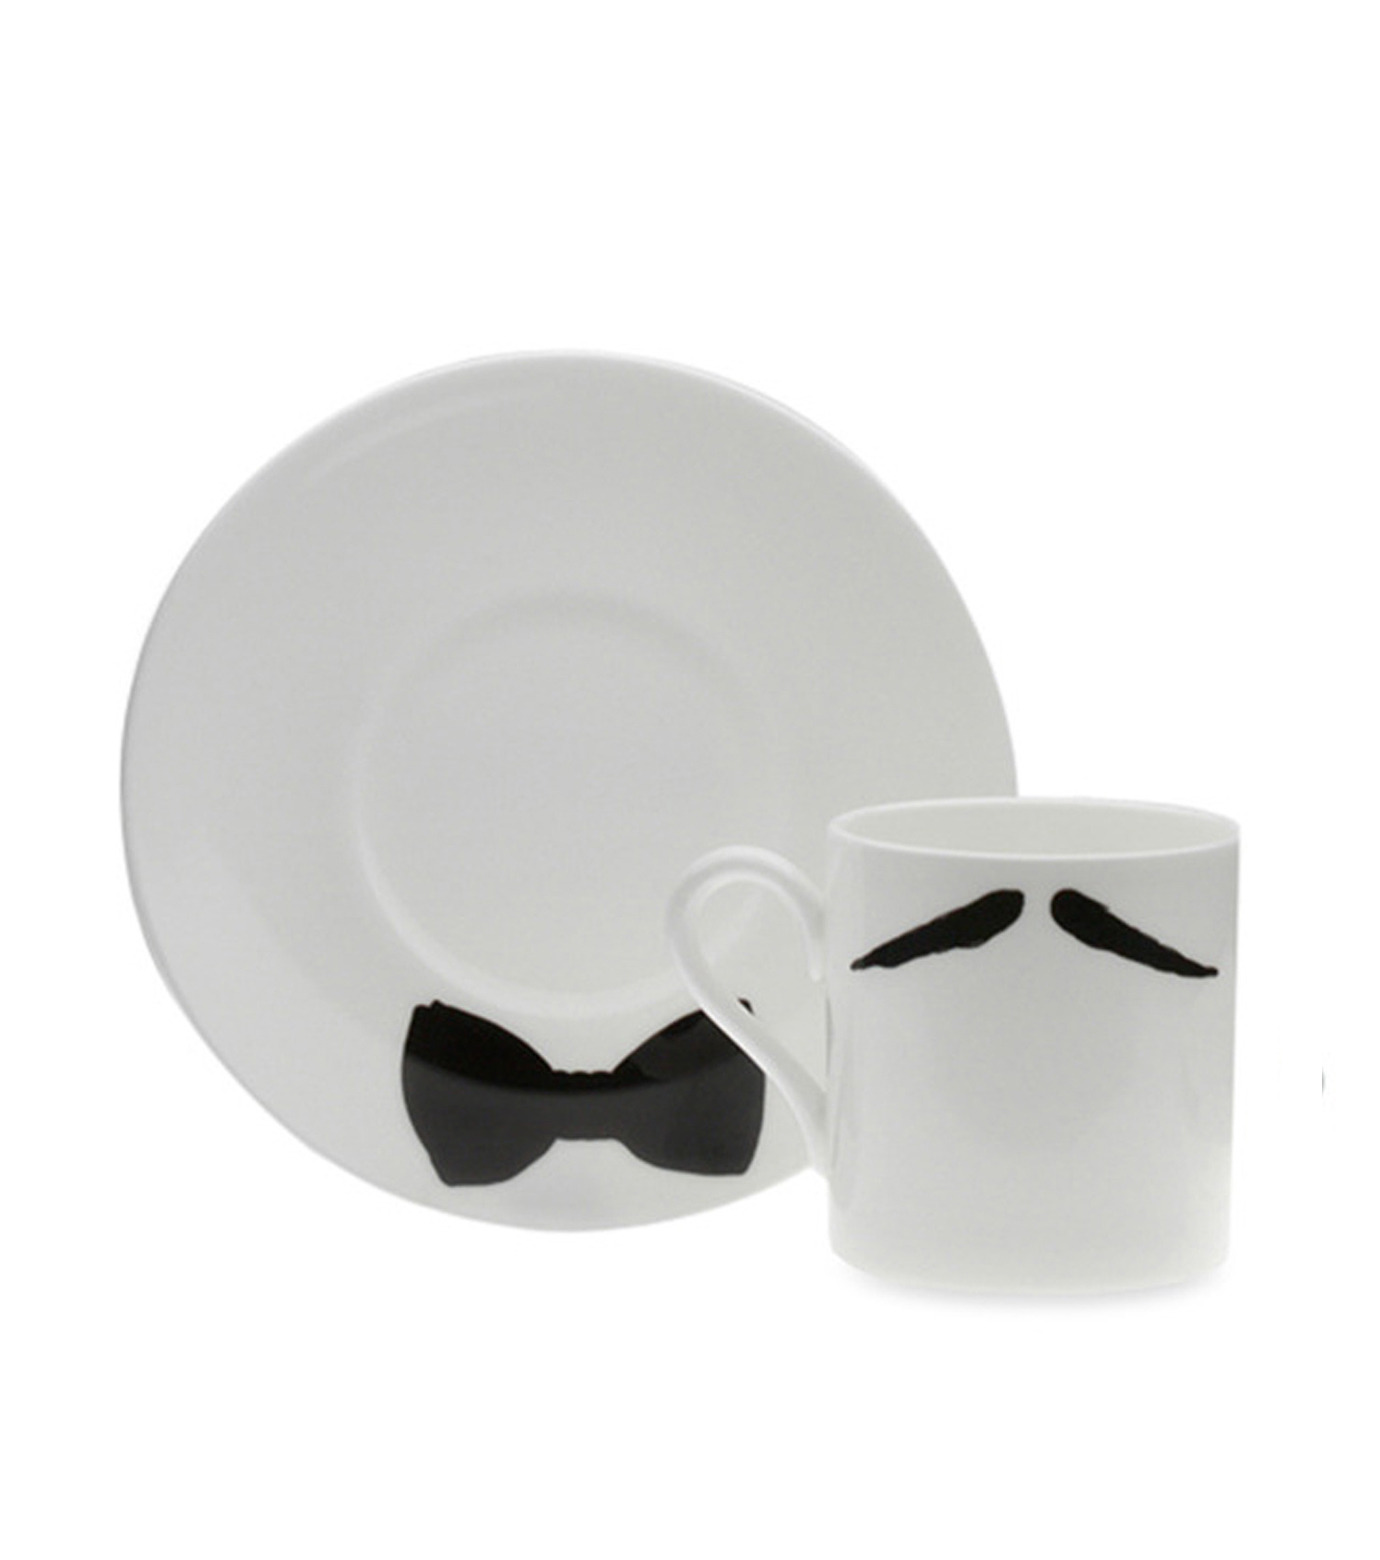 Peter Ibruegger(ピーター イーブルガ)のEspresso Cup & Saucer Maurice Poirot-WHITE(キッチン/kitchen)-O05-W-4 拡大詳細画像1